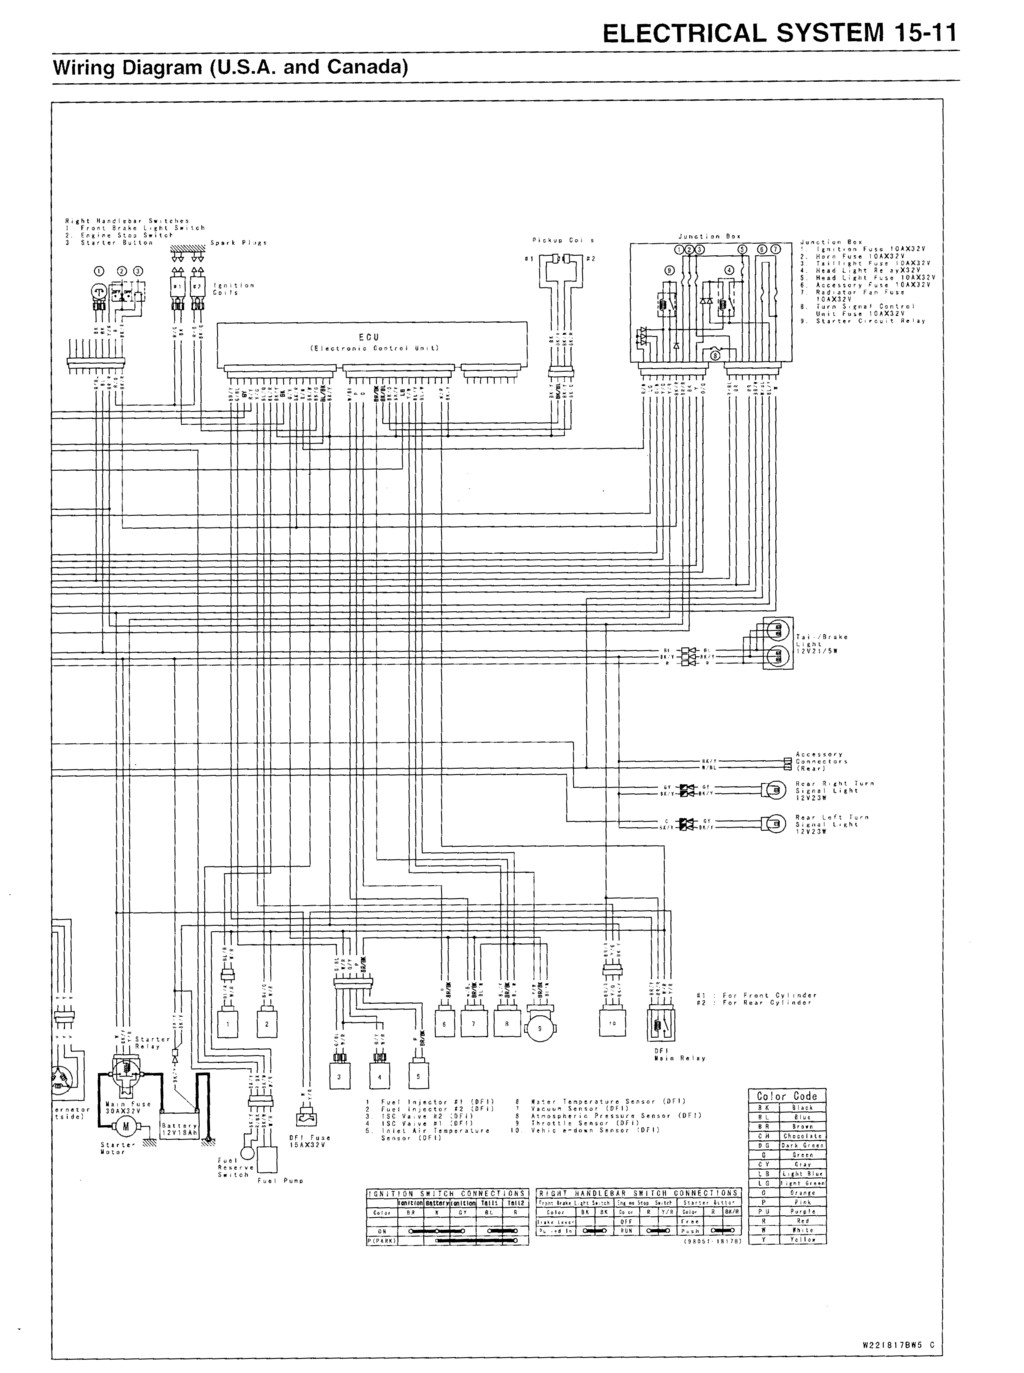 🏆 [DIAGRAM in Pictures Database] 2001 Kawasaki Vulcan 1500 Wiring Diagram  Just Download or Read Wiring Diagram - SANDRA.HYATT.A-TAPE-DIAGRAM .ONYXUM.COMComplete Diagram Picture Database - Onyxum.com